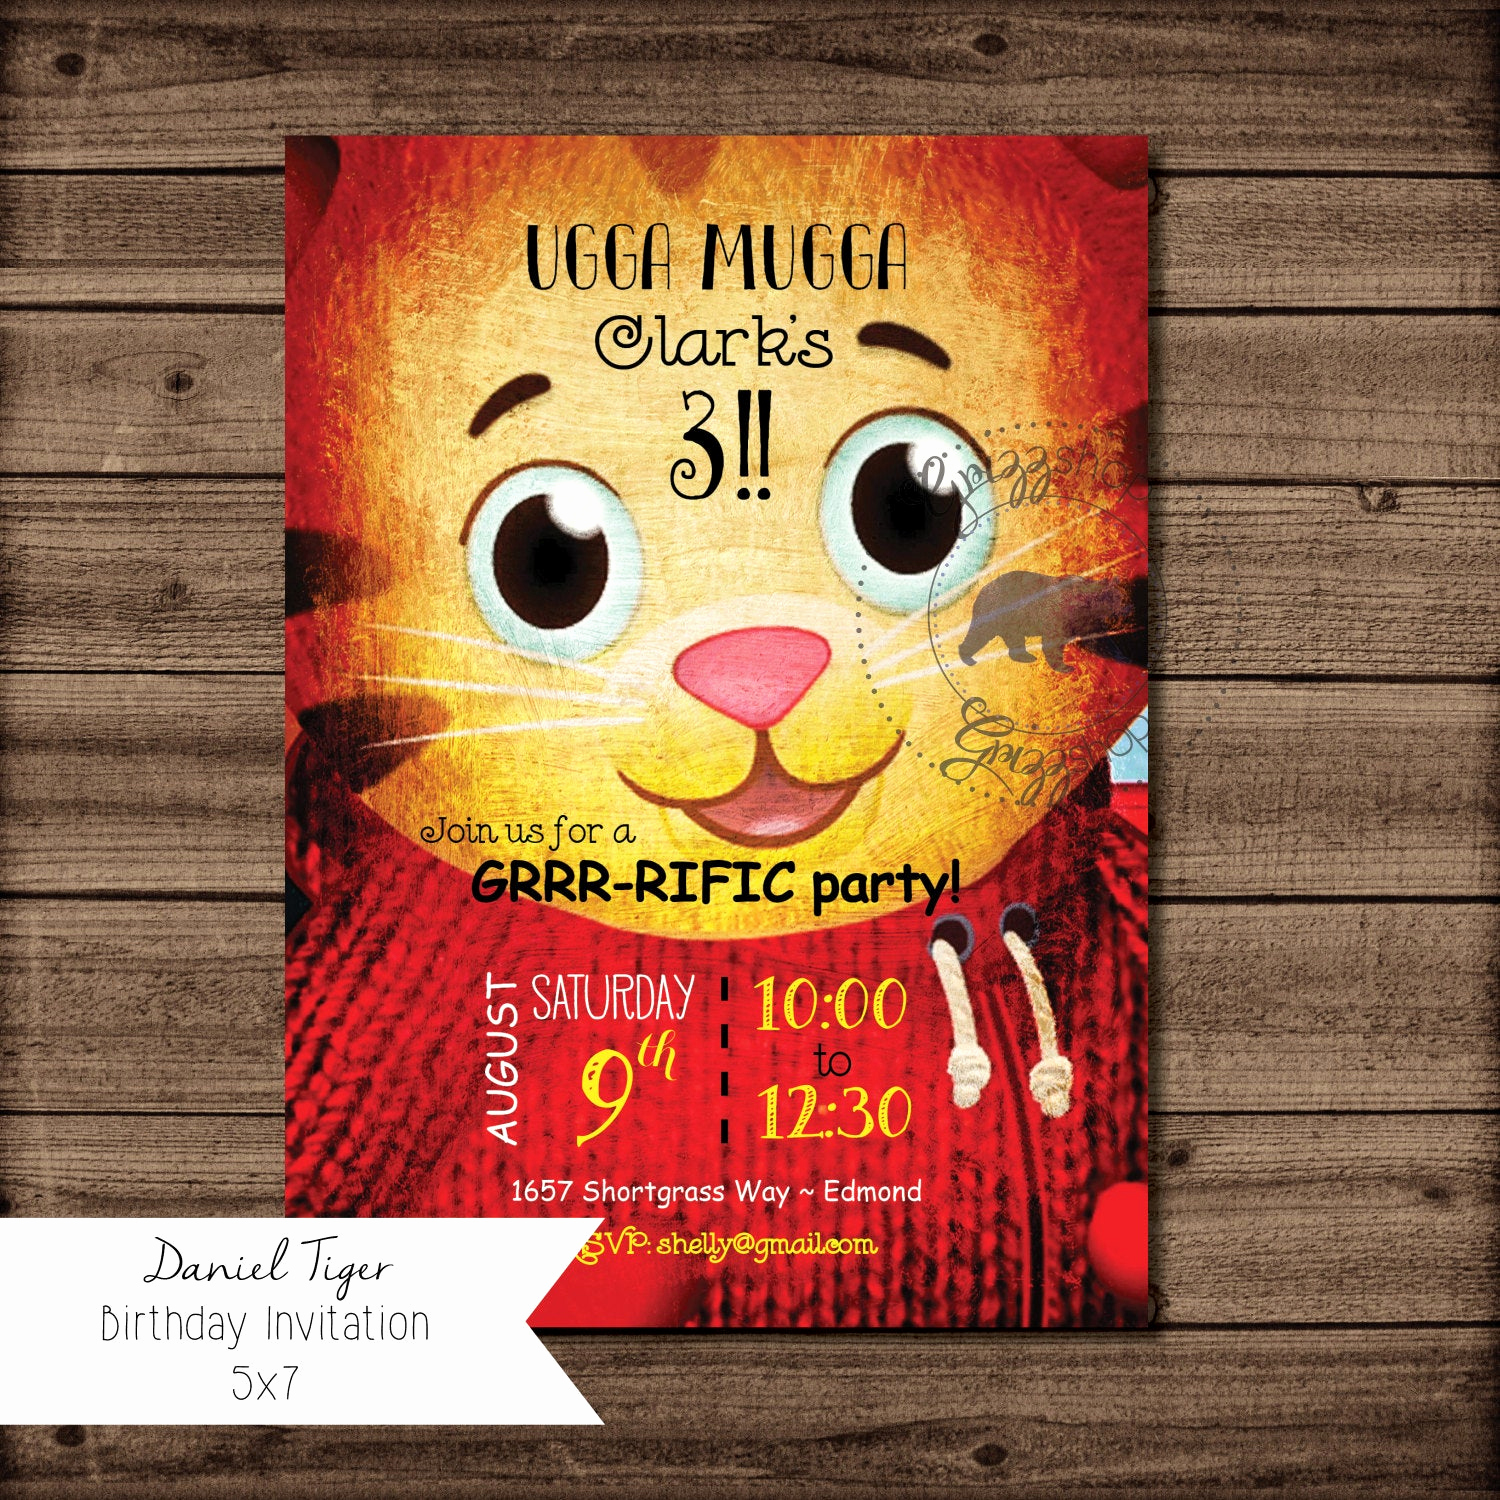 Daniel Tiger Birthday Invitation Unique Daniel Tiger Birthday Invitation